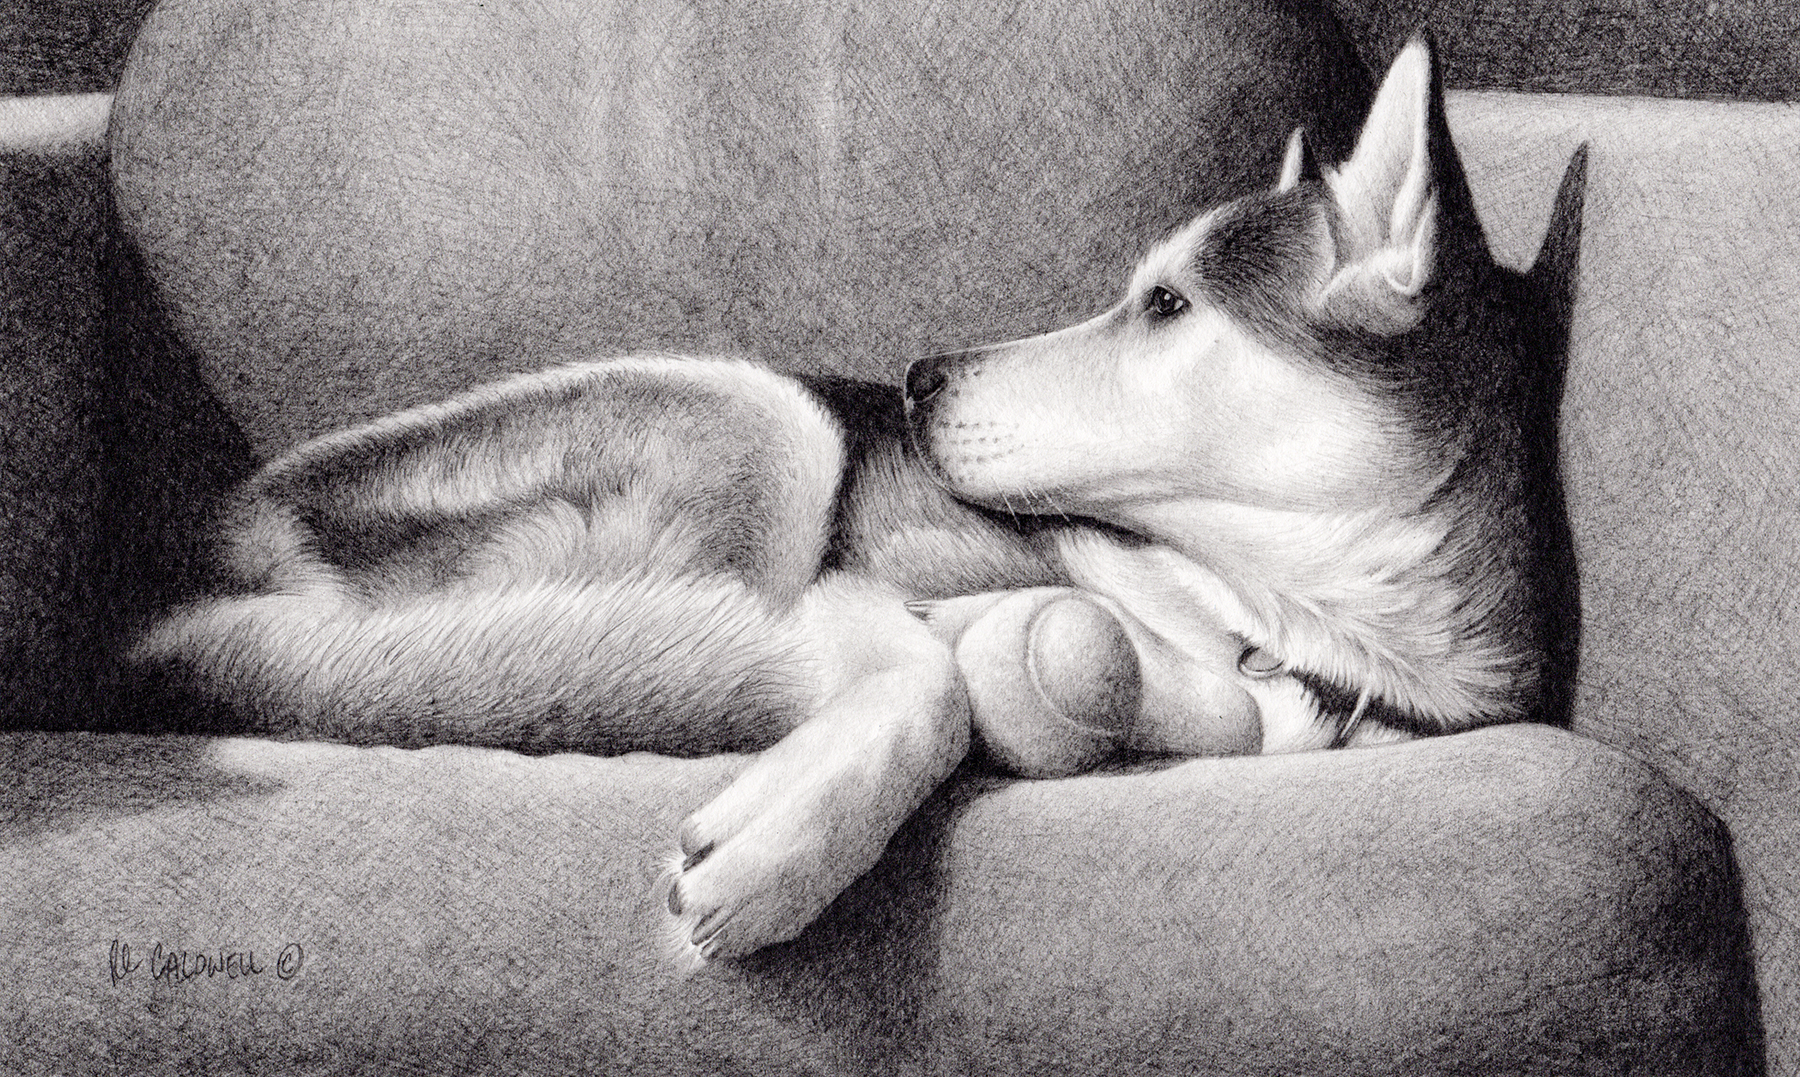 Graphite drawing of a dog on a sofa by artist Robert Louis Caldwell